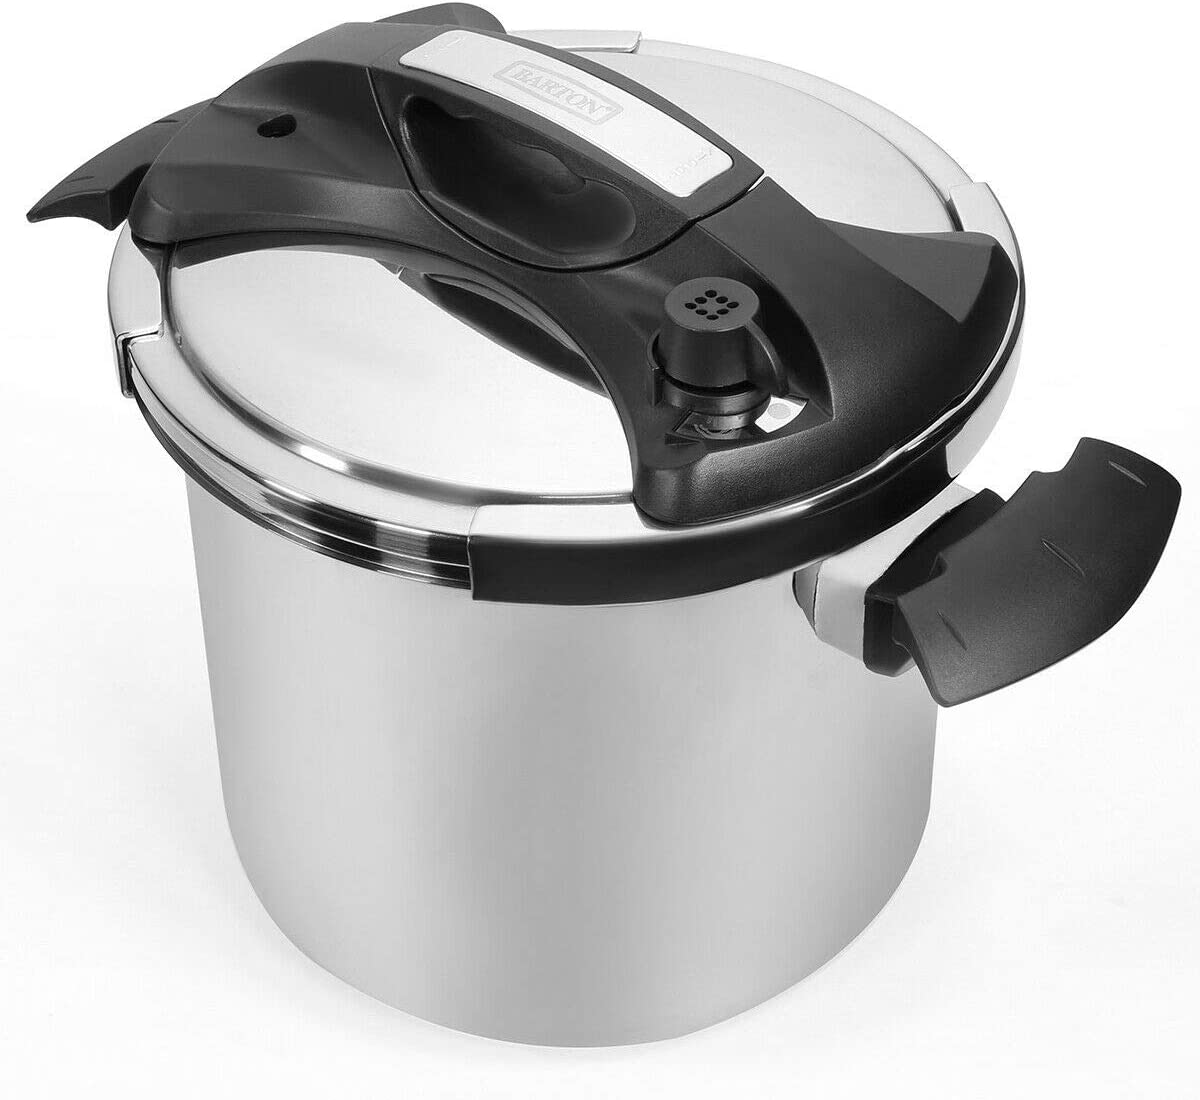 Turbo Pressure Cooker Stovetop 10 Quart Easy-Lock Lid Induction Compatible 10QT, Silver